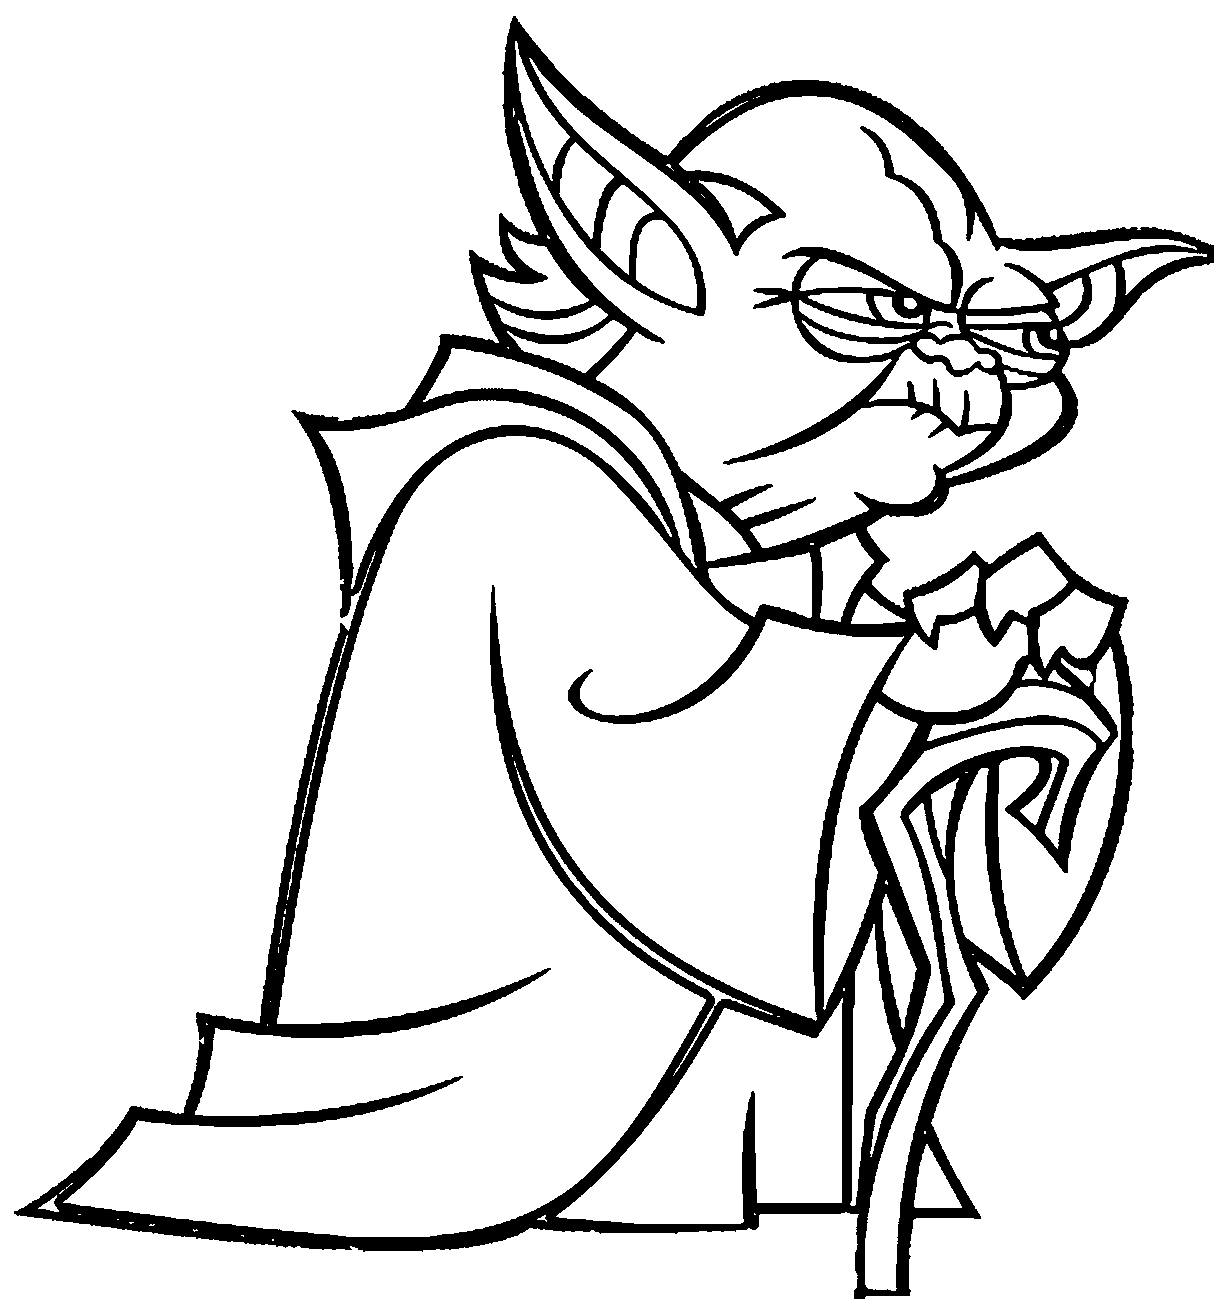 star wars coloring pictures star wars to print star wars kids coloring pages wars coloring pictures star